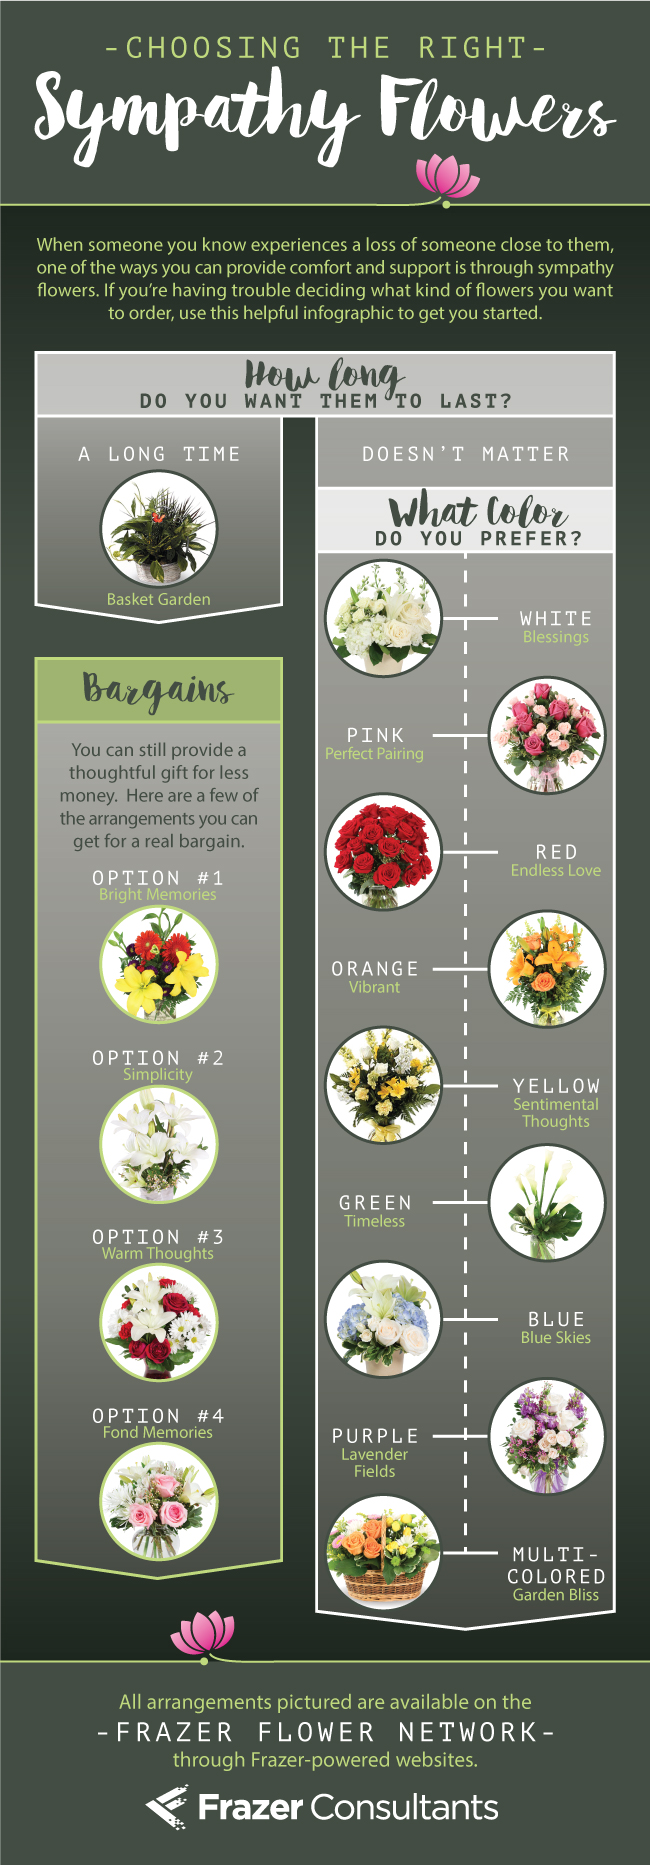 A flower infographic